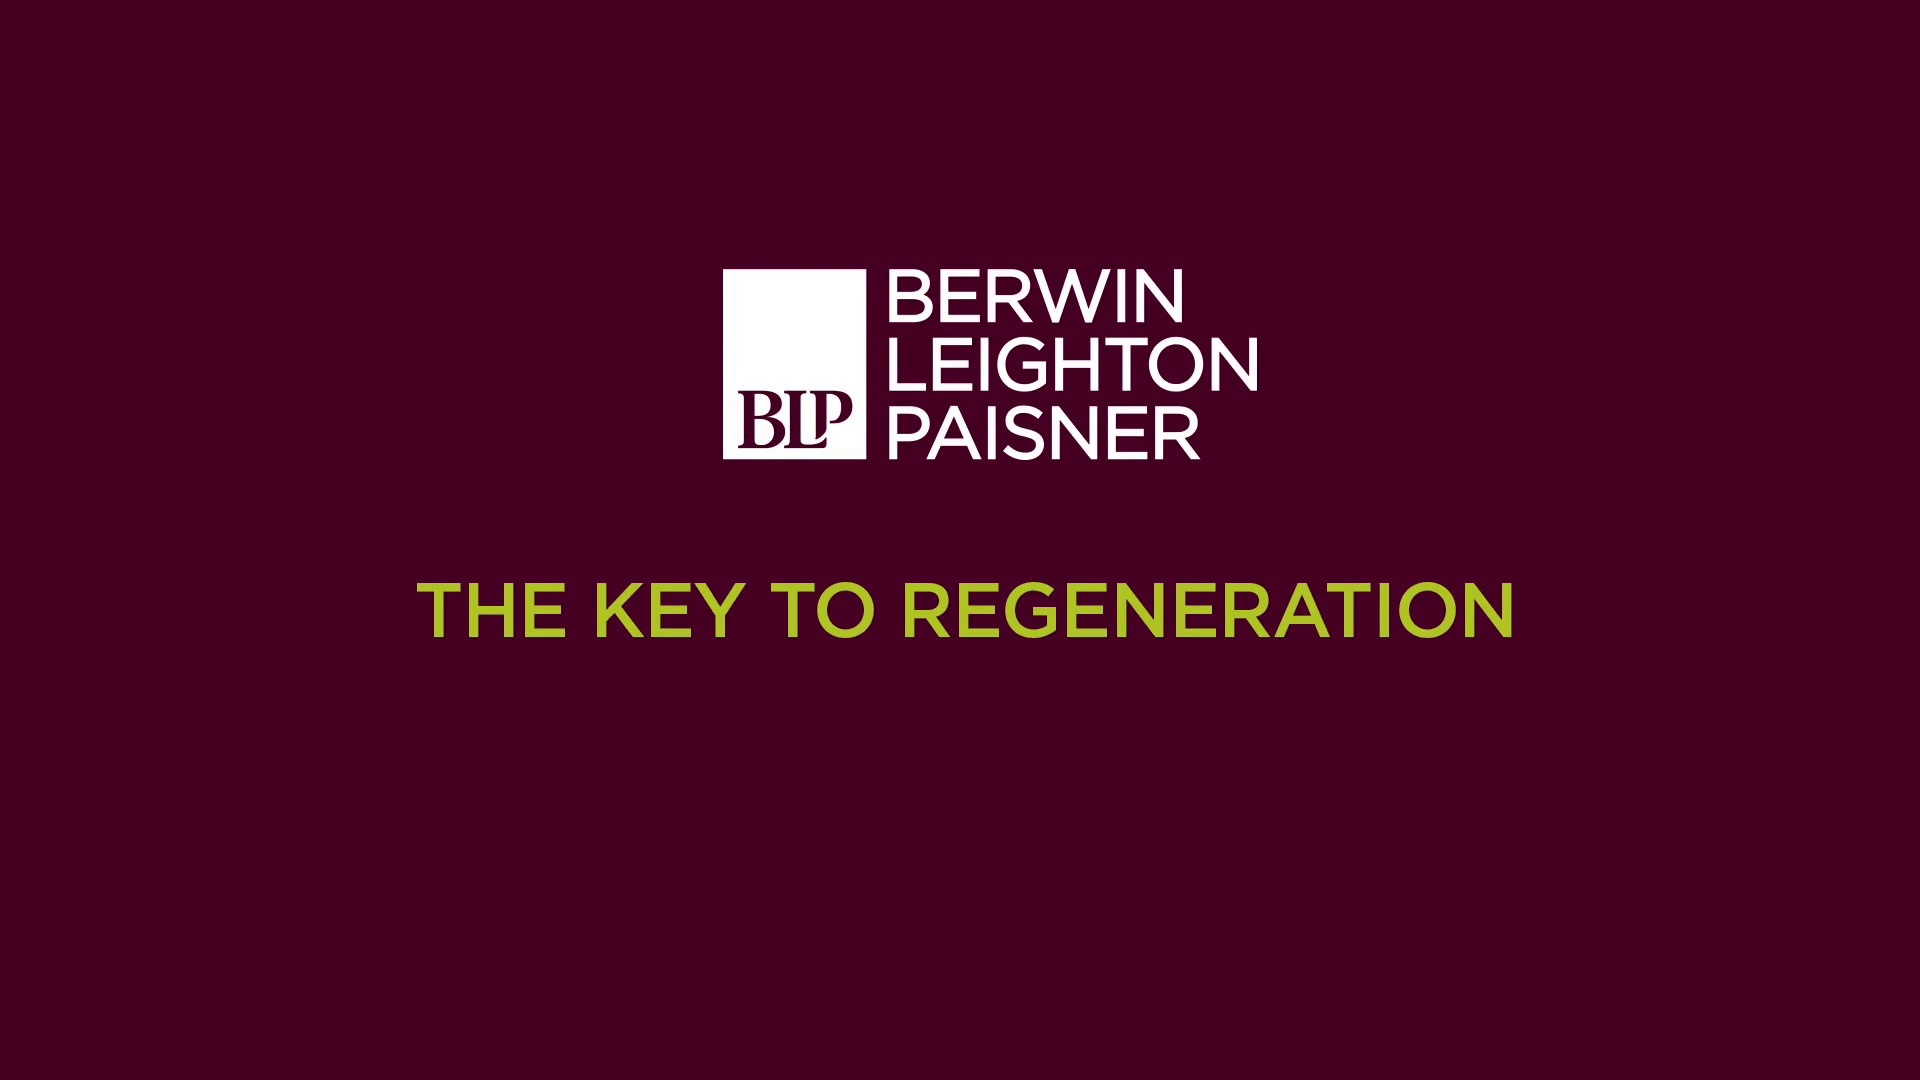 Still image from 'The key to regeneration' video